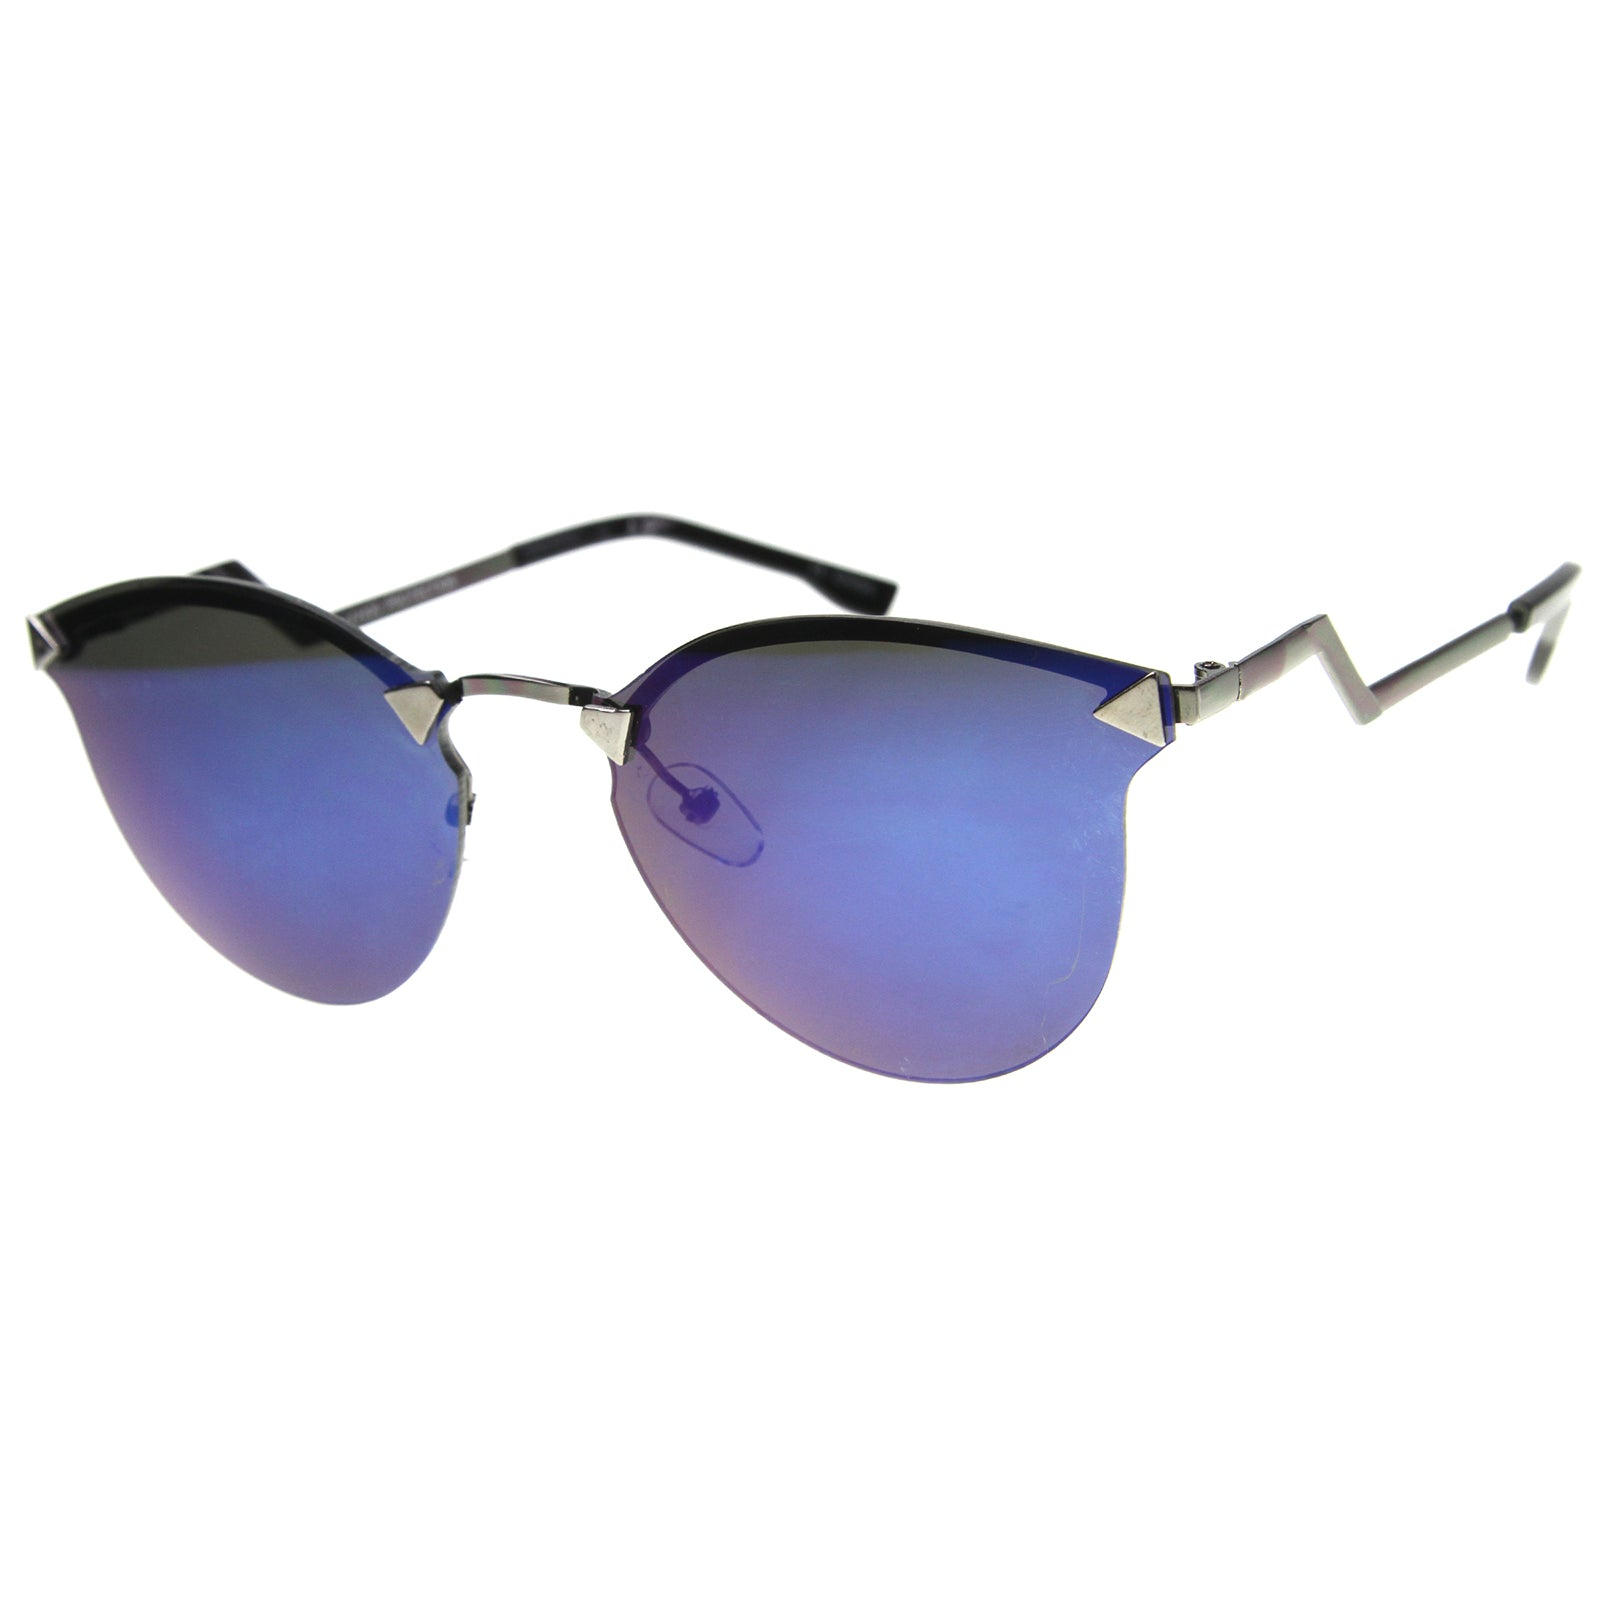 Mens Metal Aviator Sunglasses With UV400 Protected Mirrored Lens - sunglass.la - 2